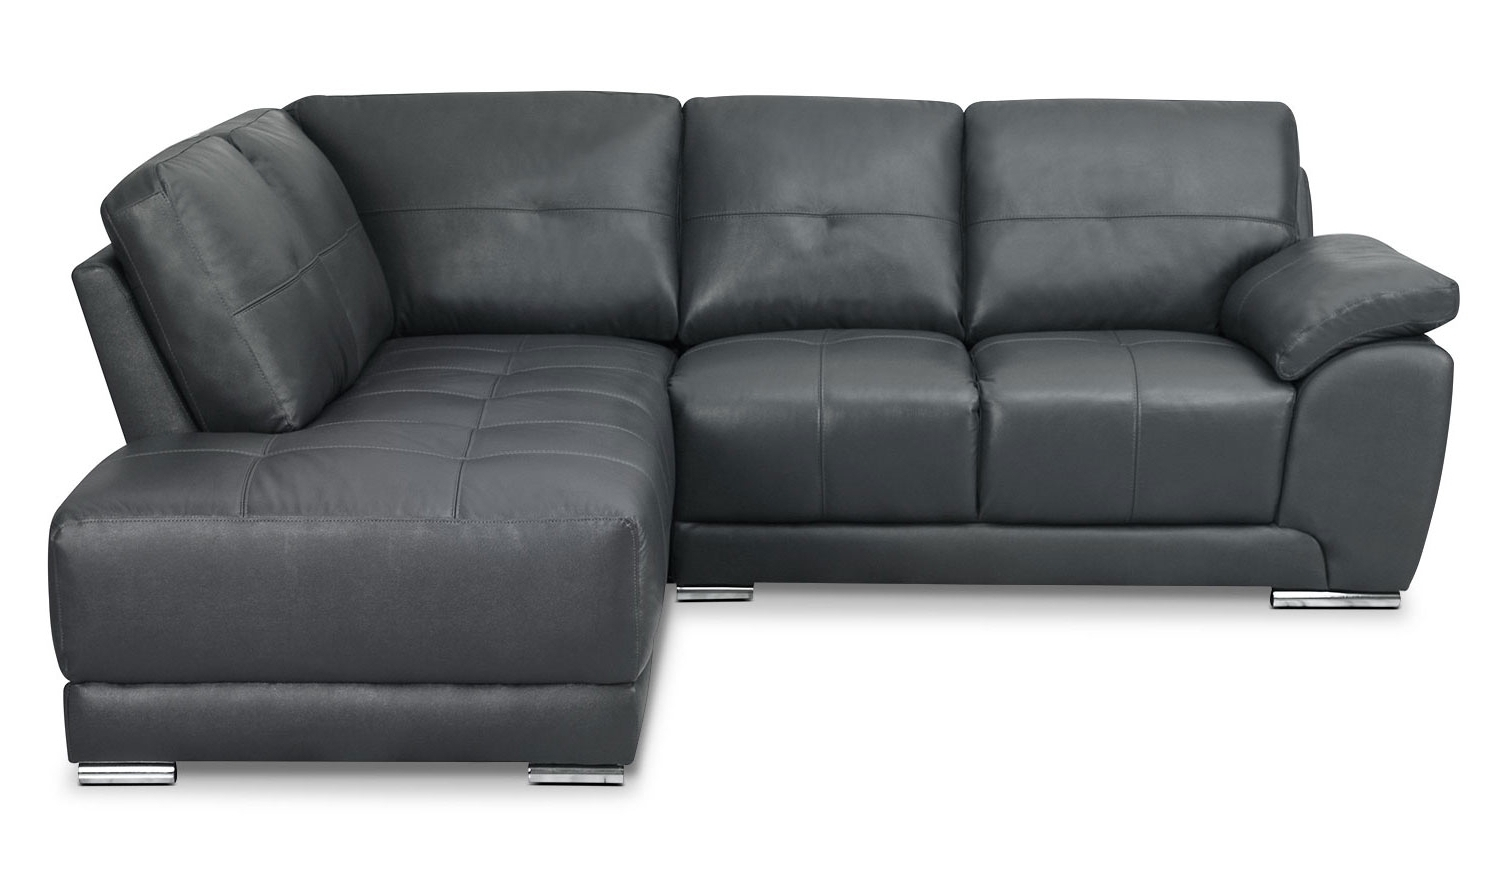 Sectional Sofas At The Brick Regarding Best And Newest Elegant The Brick Sectionals – Buildsimplehome (View 11 of 20)